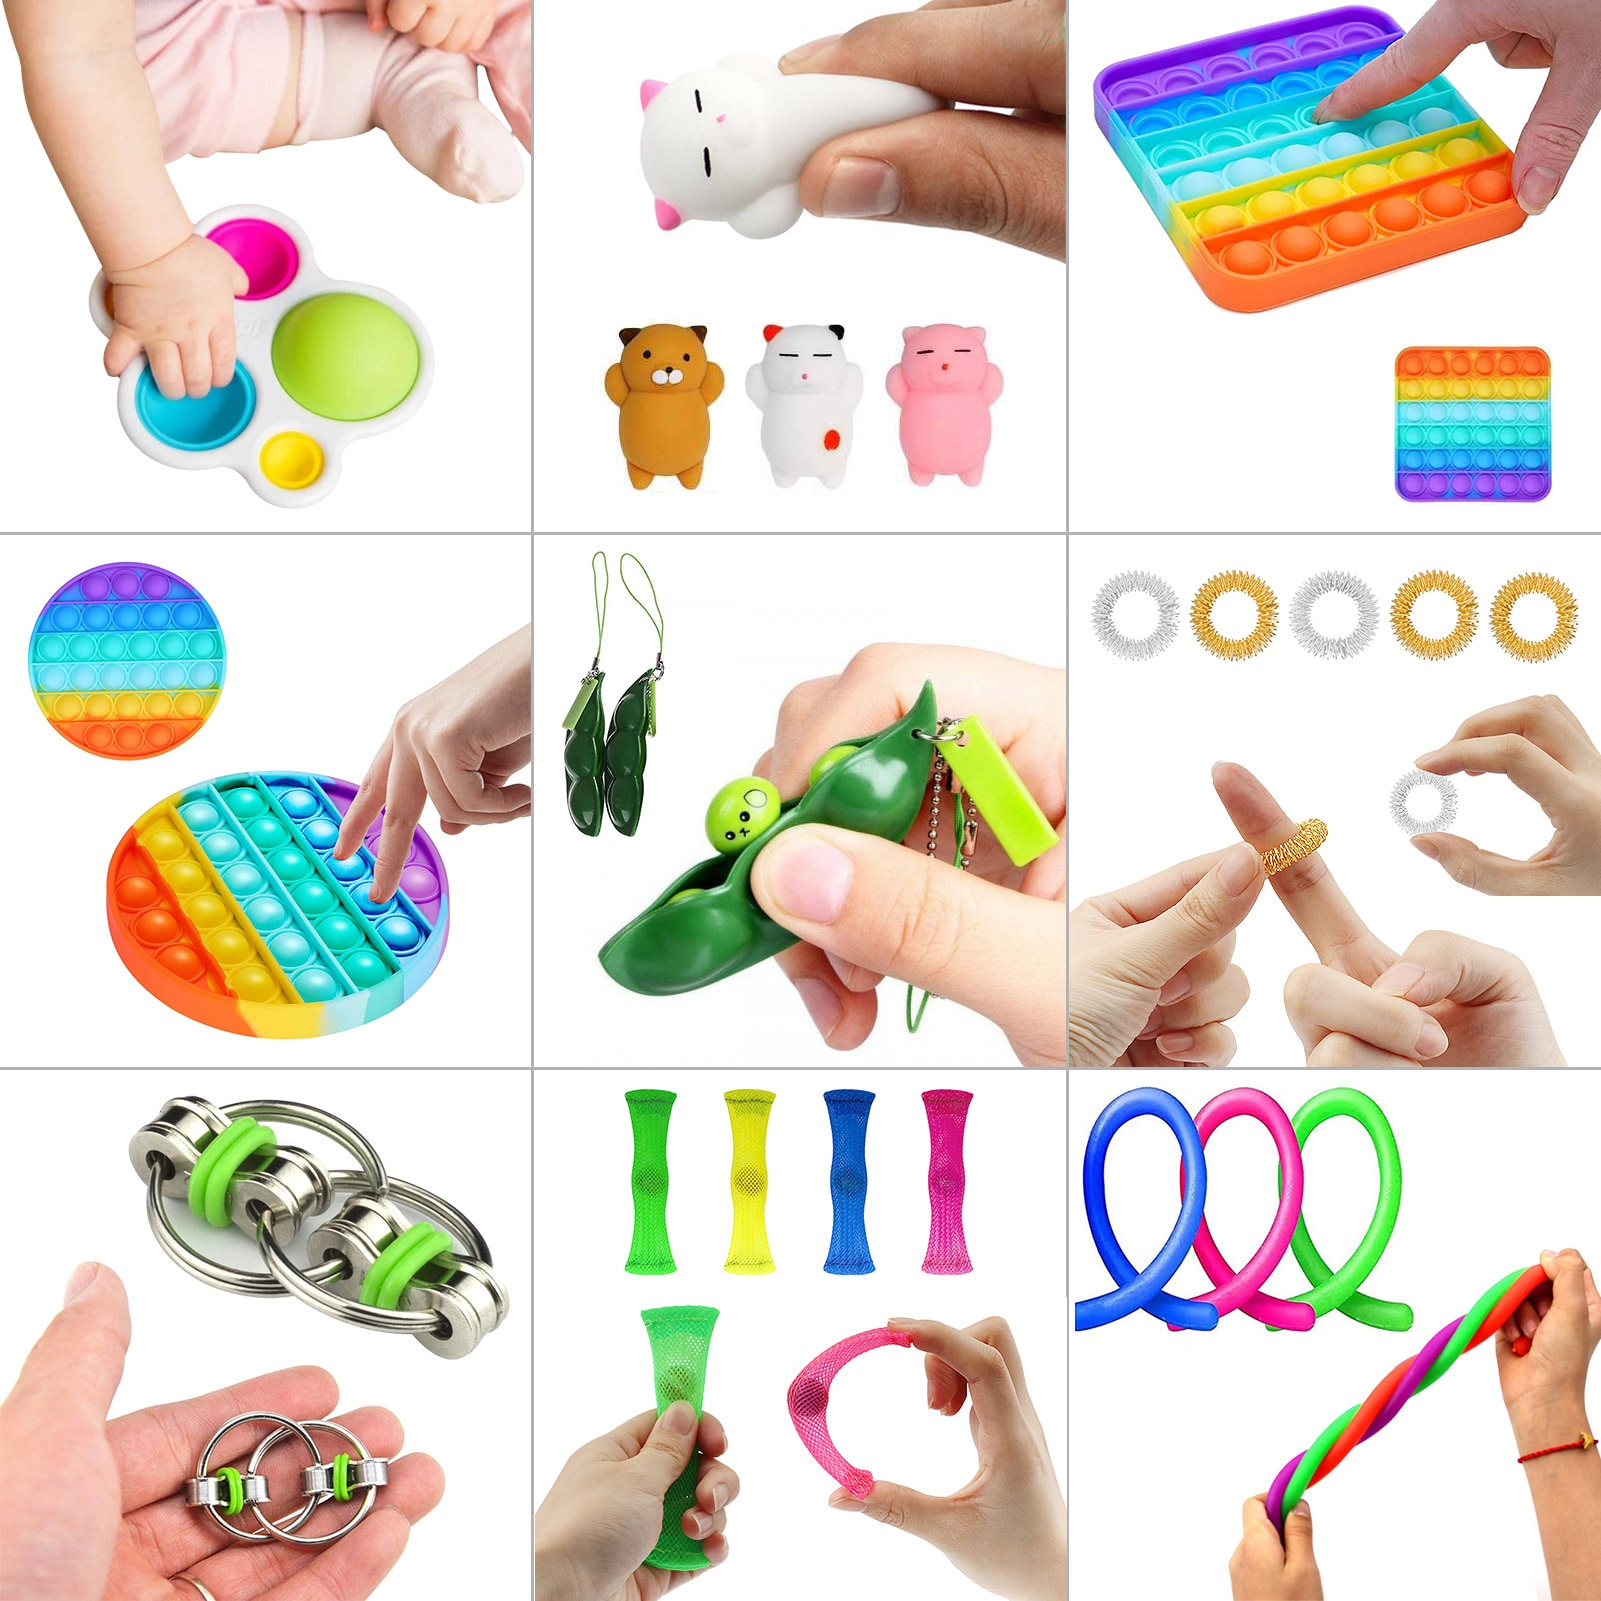 23 Pack Fidget Sensory Toy Set Stress Relief Toys Autism Anxiety Relief Stress Fidget Sensory Toy For Kids Adults Gifts enlarge